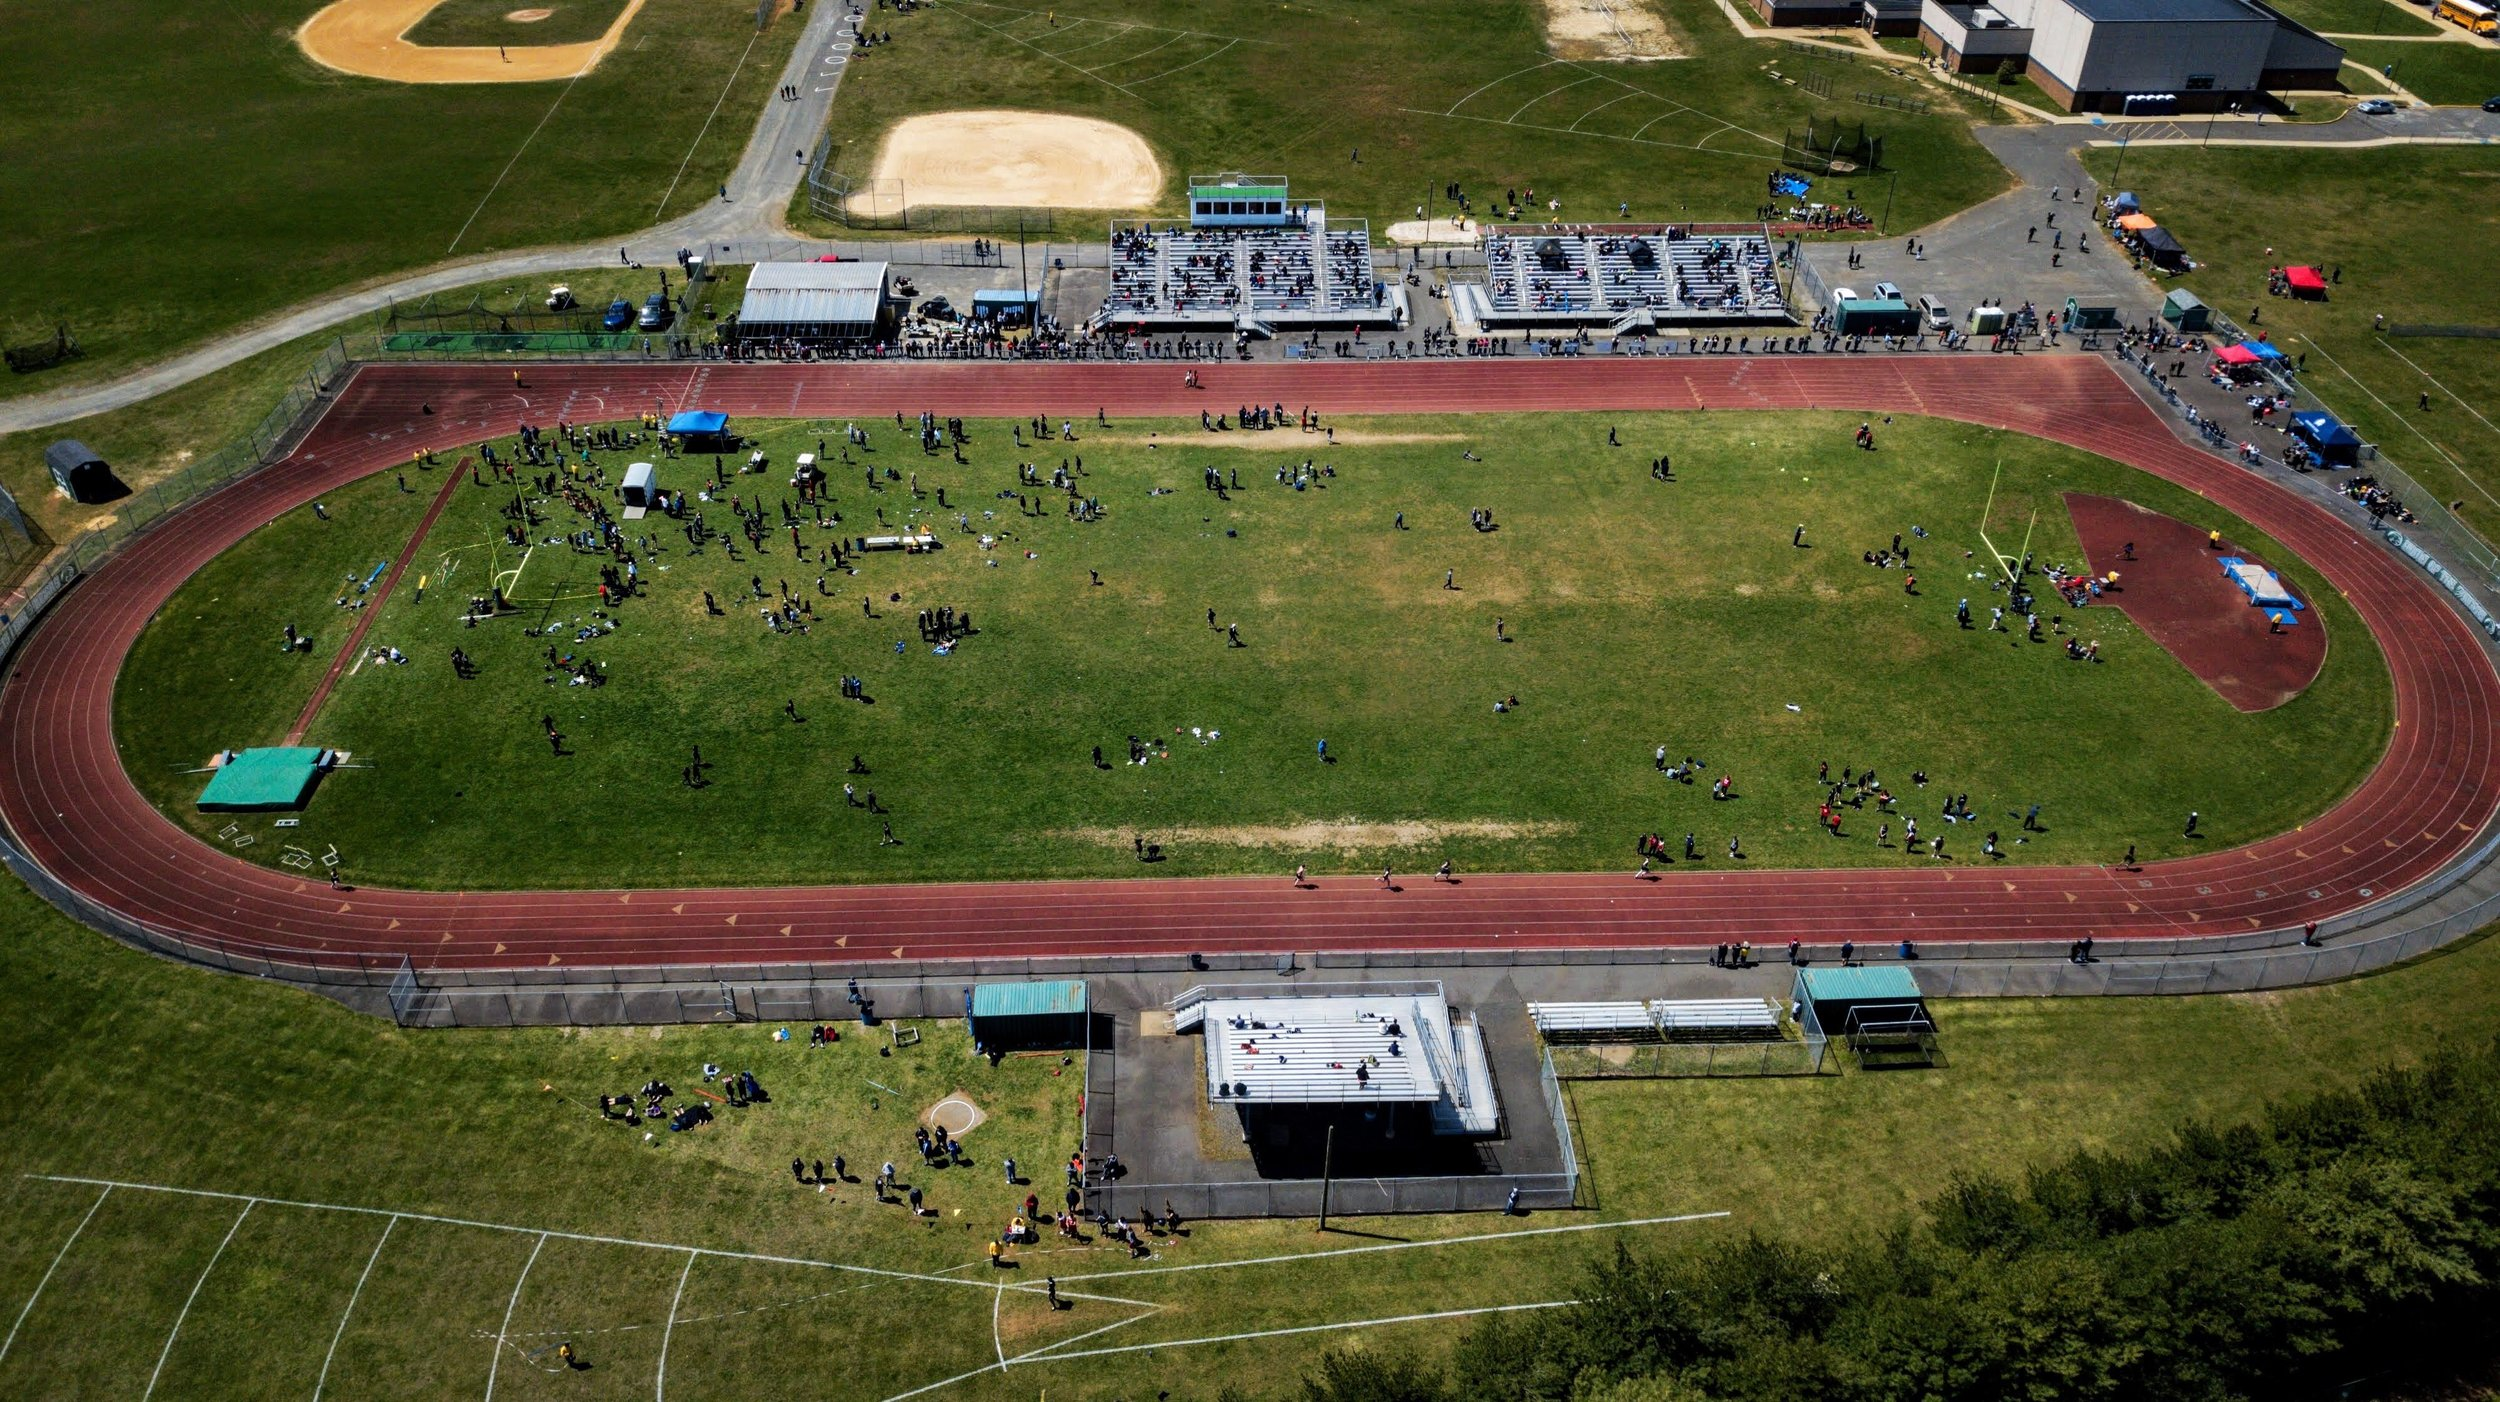 Colts Neck Relays